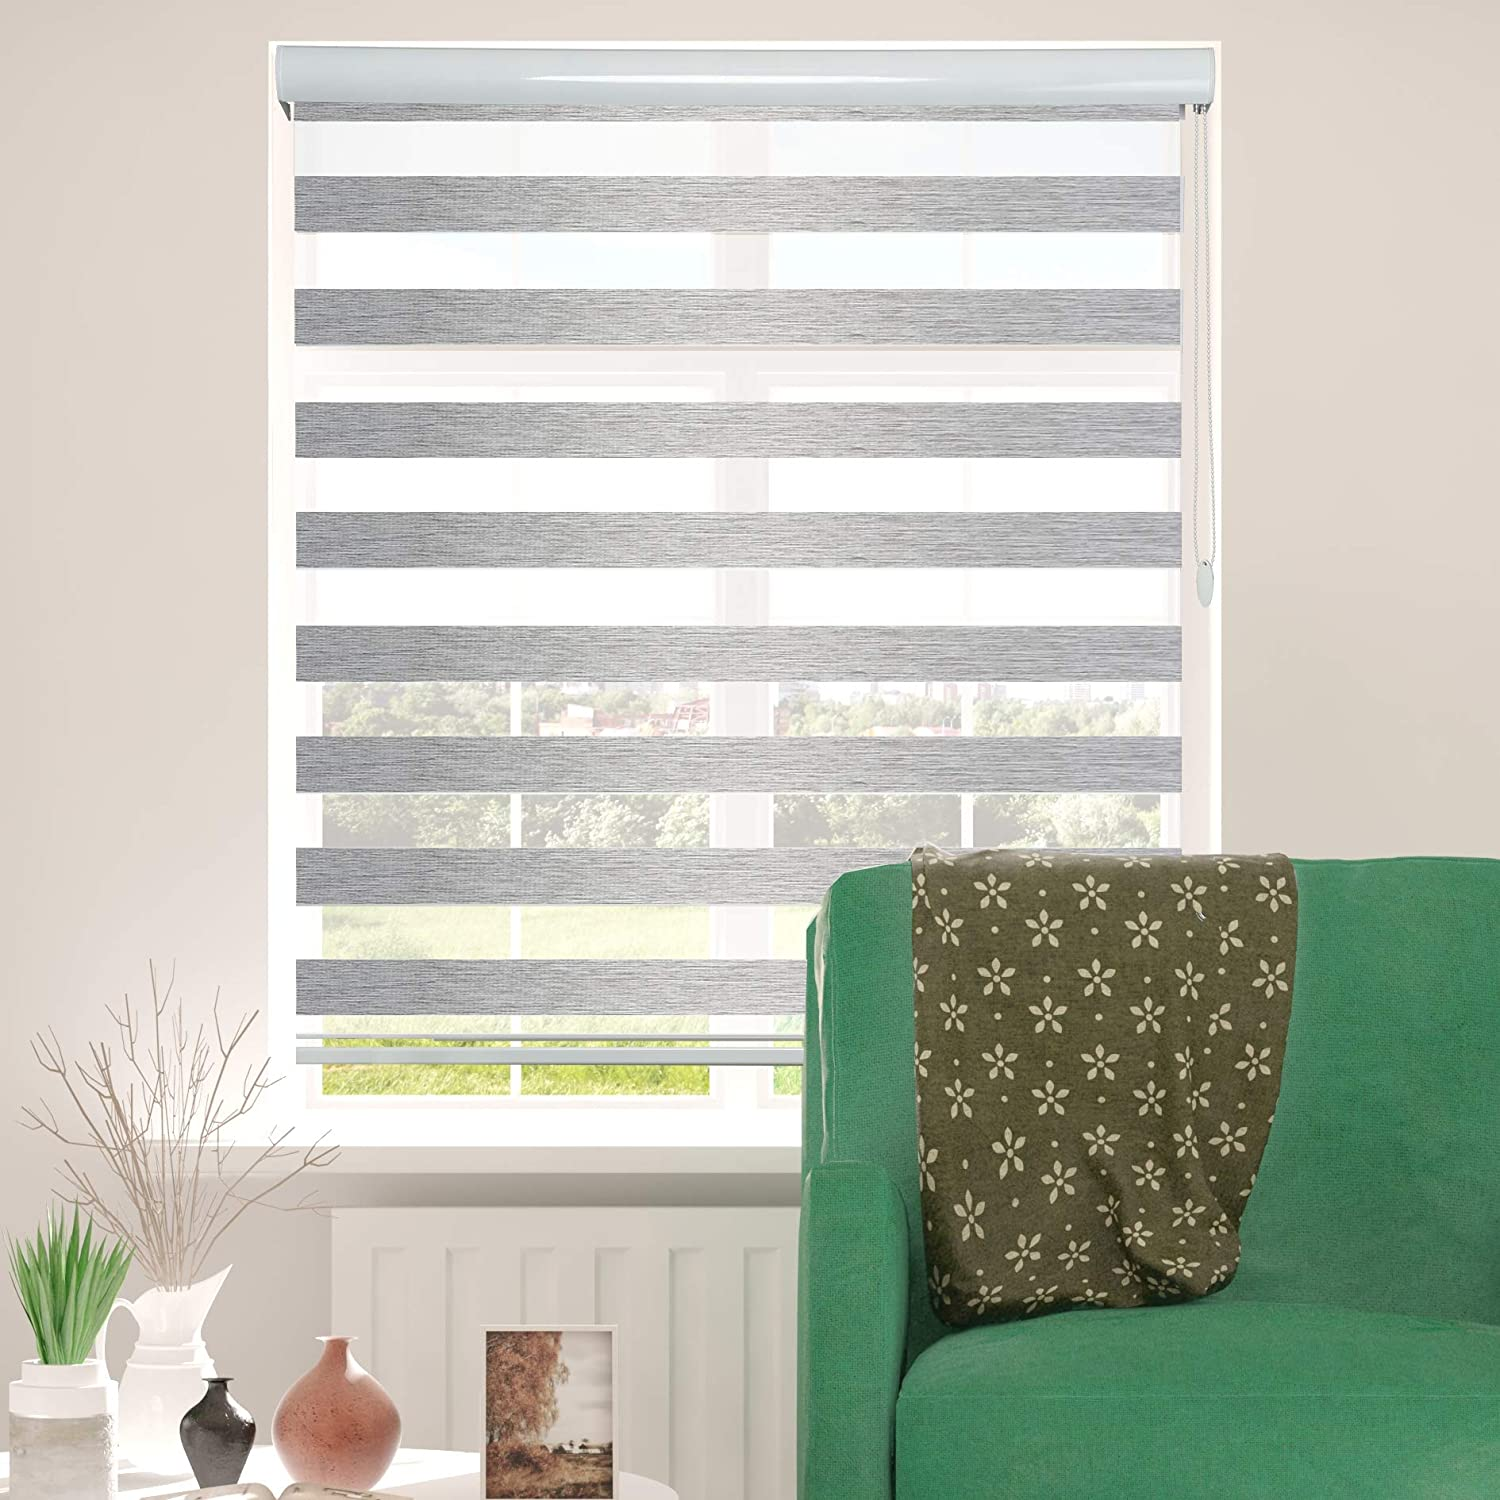 ShadesU Window Shades